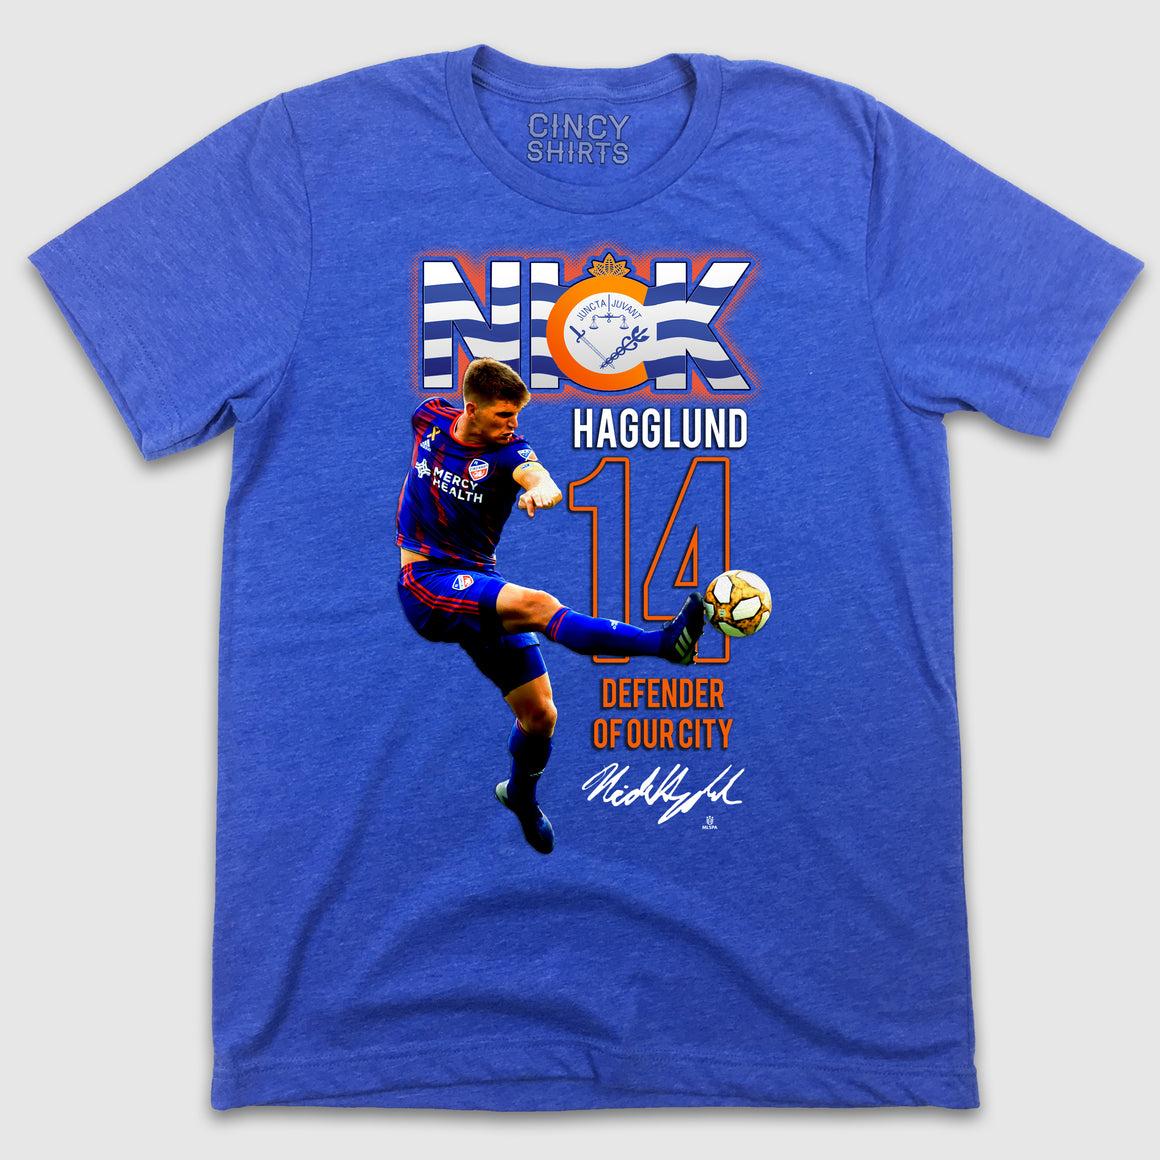 Official Nick Hagglund MLSPA Spotlight Tee - Cincy Shirts